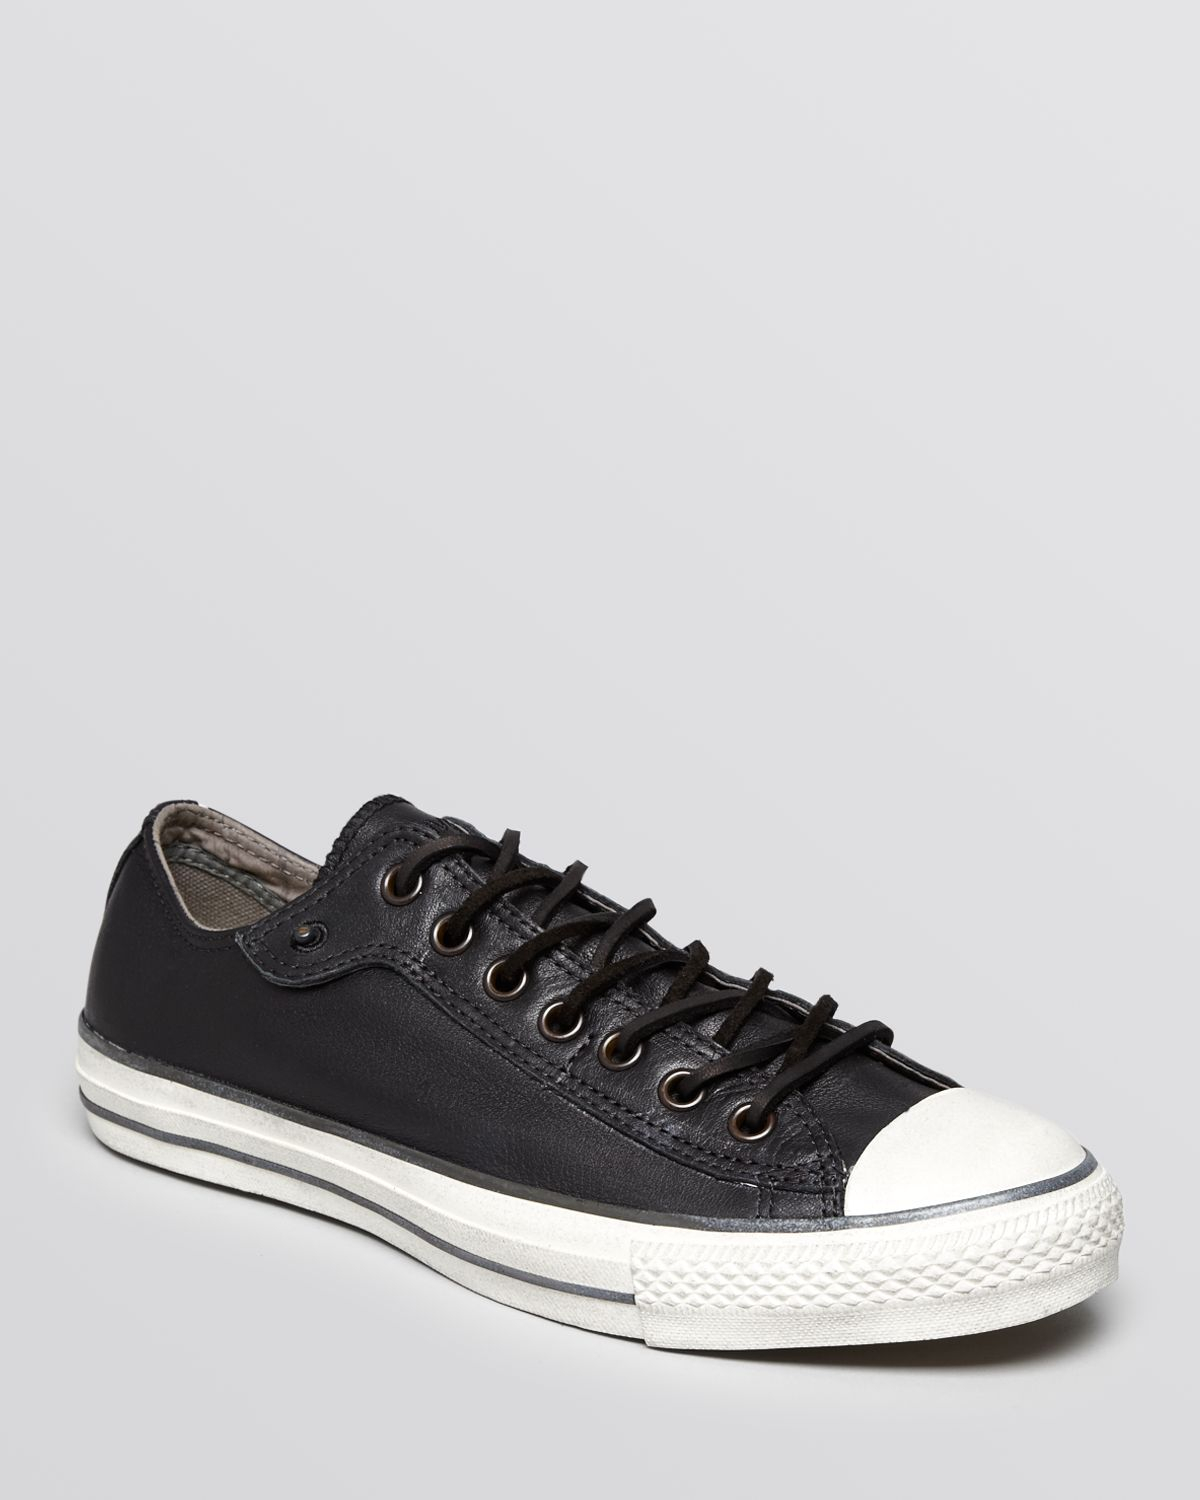 converse chuck taylor all star low top sneakers in black. Black Bedroom Furniture Sets. Home Design Ideas